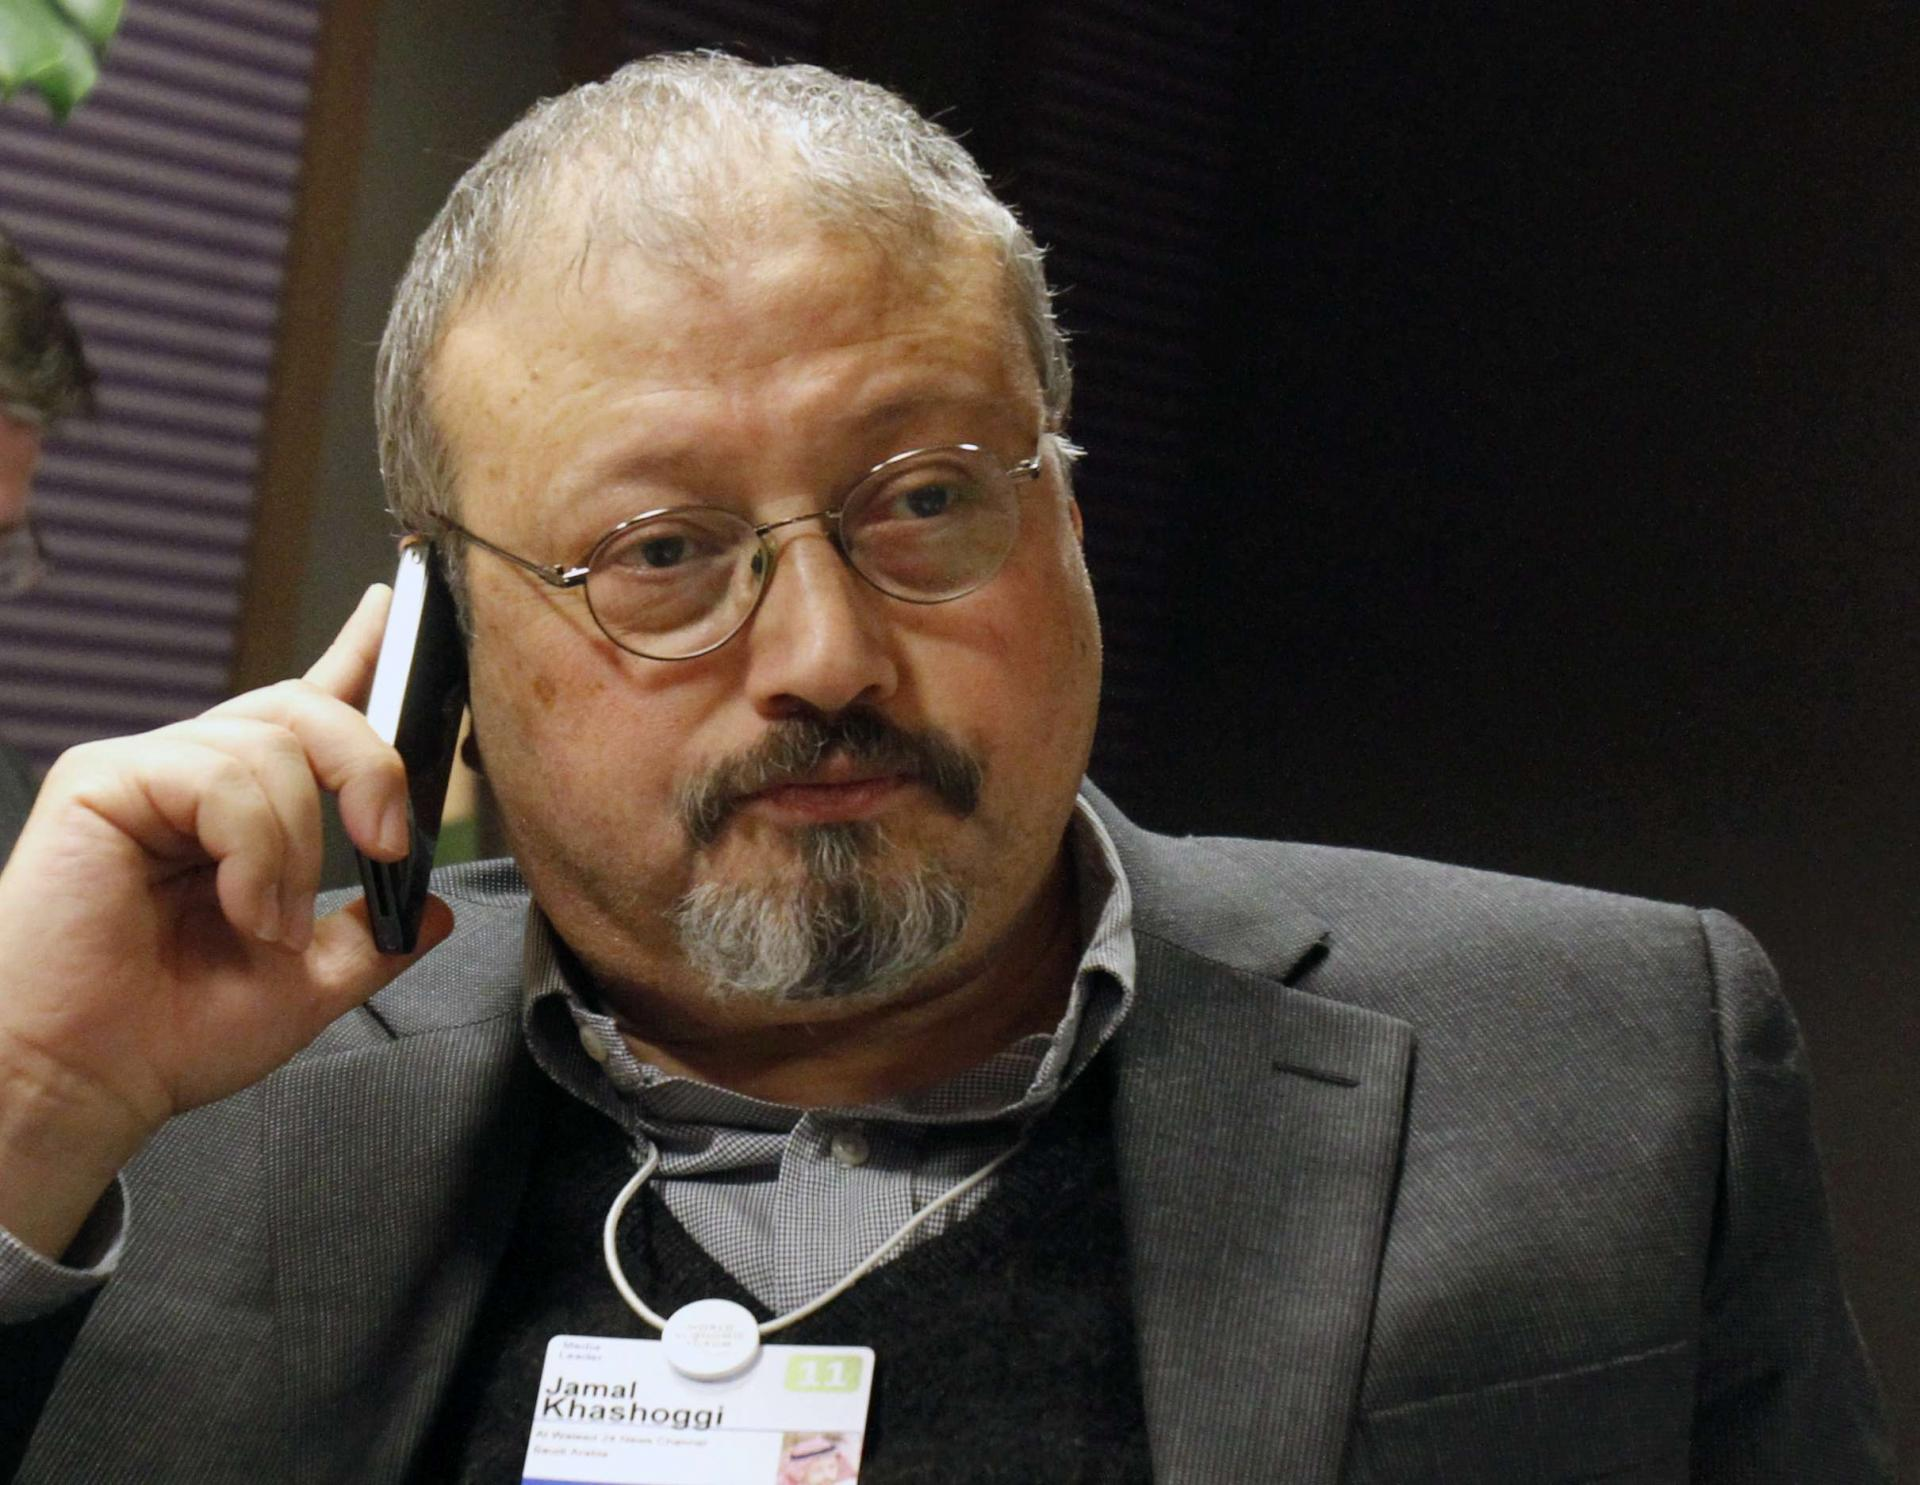 The 59-year-old Saudi insider-turned-critic was strangled and his body cut into pieces by a team of 15 Saudis sent to Istanbul